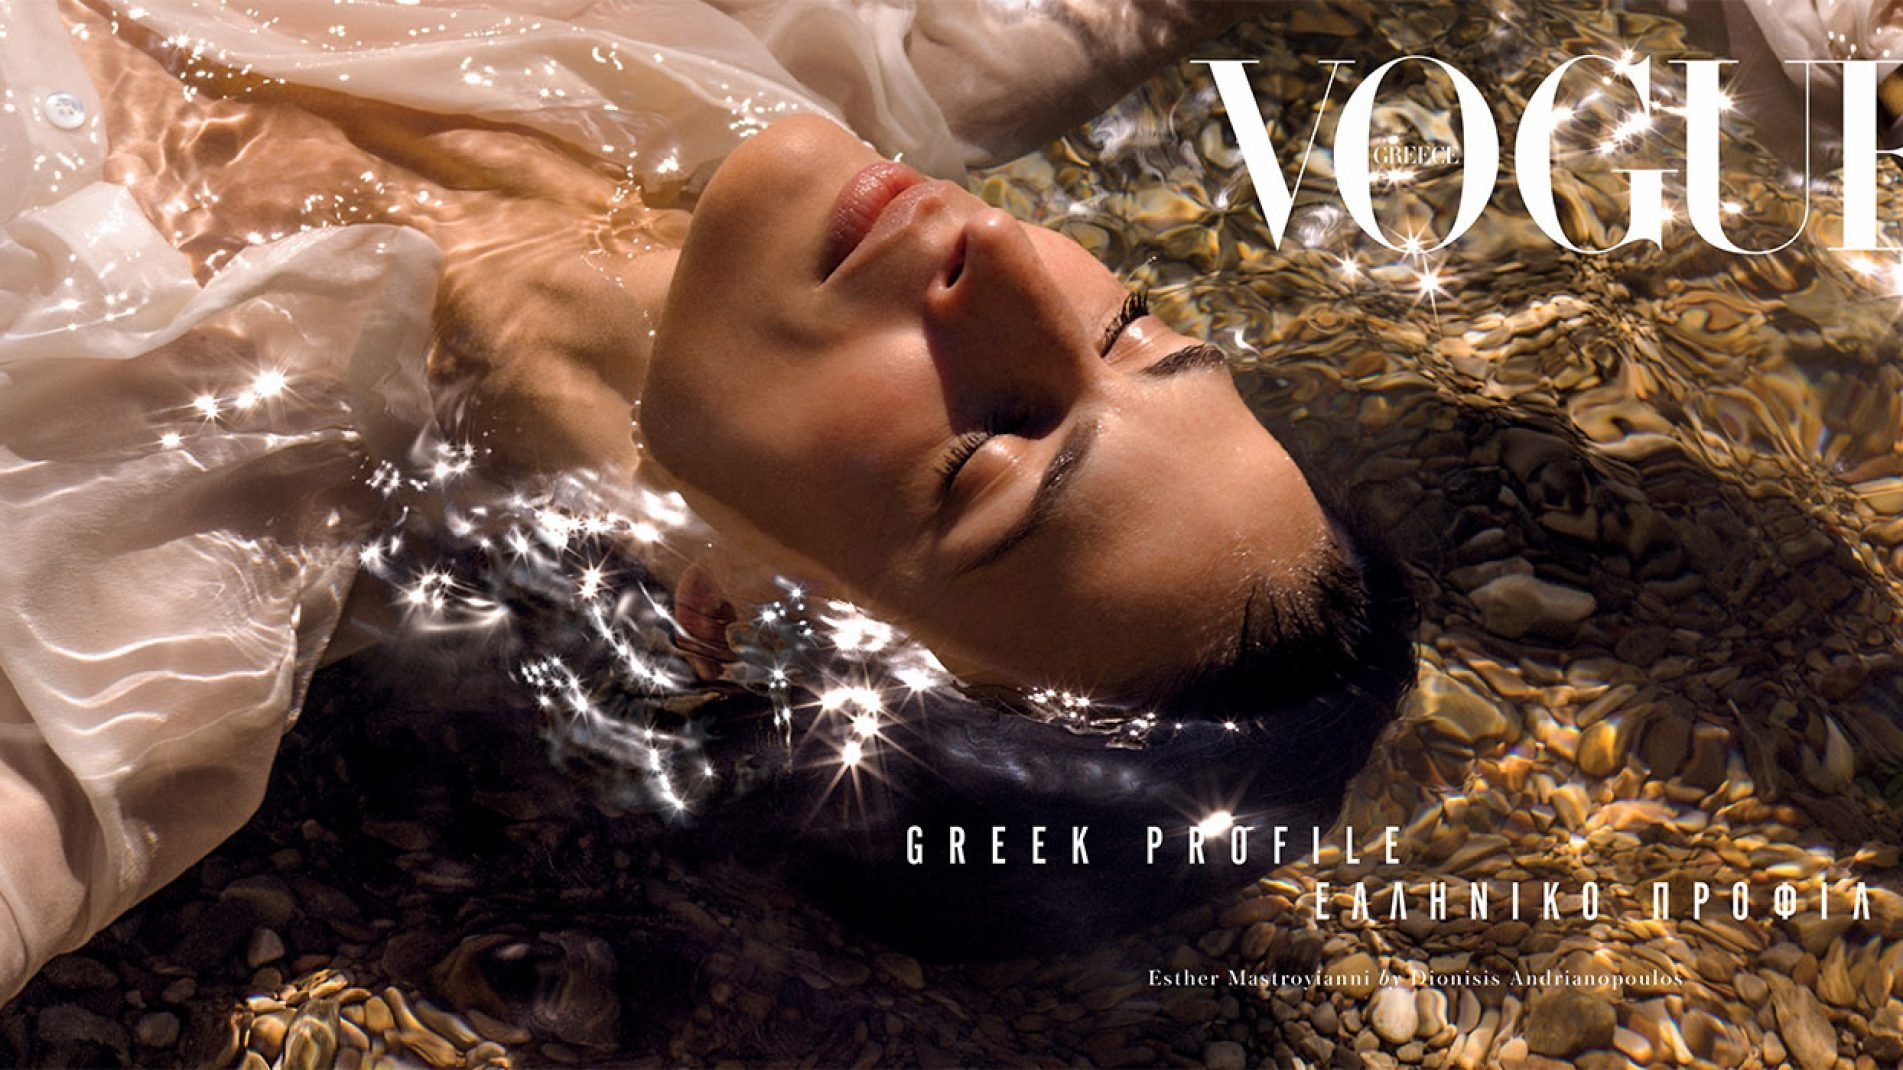 VOGUE GREECE JULY AUGUST 2020 ISSUE